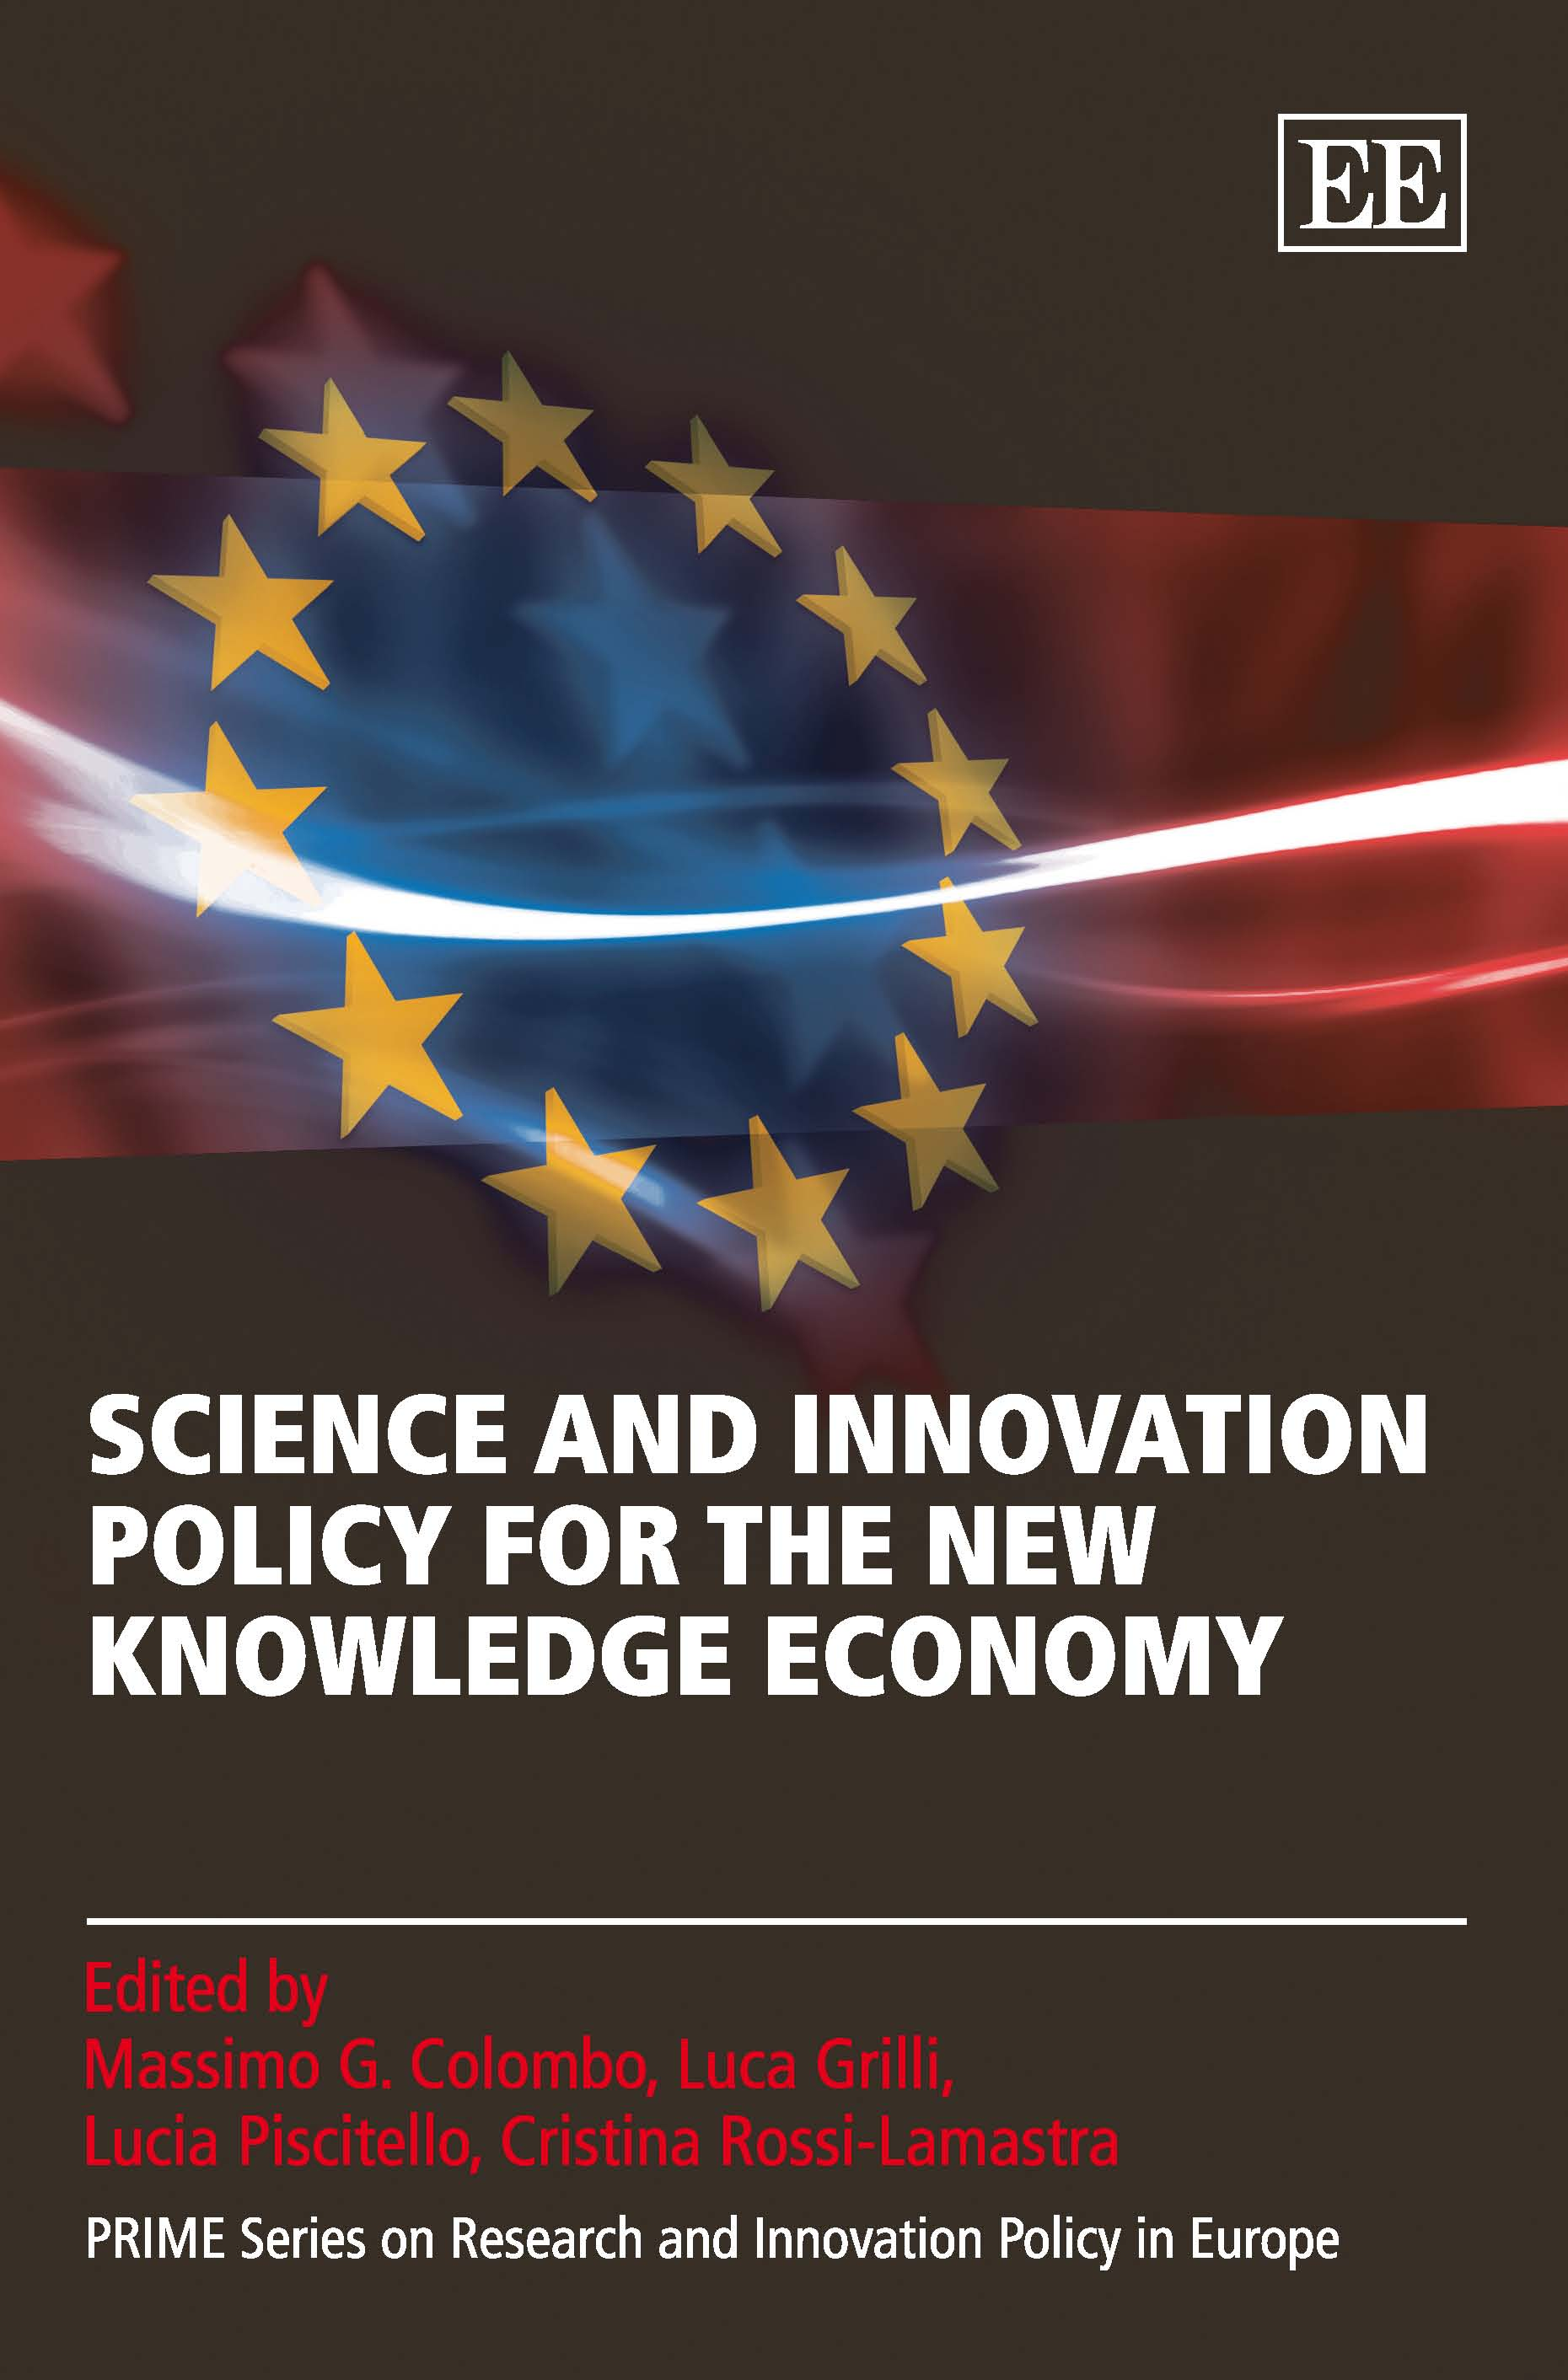 Science and Innovation Policy for the New Knowledge Economy